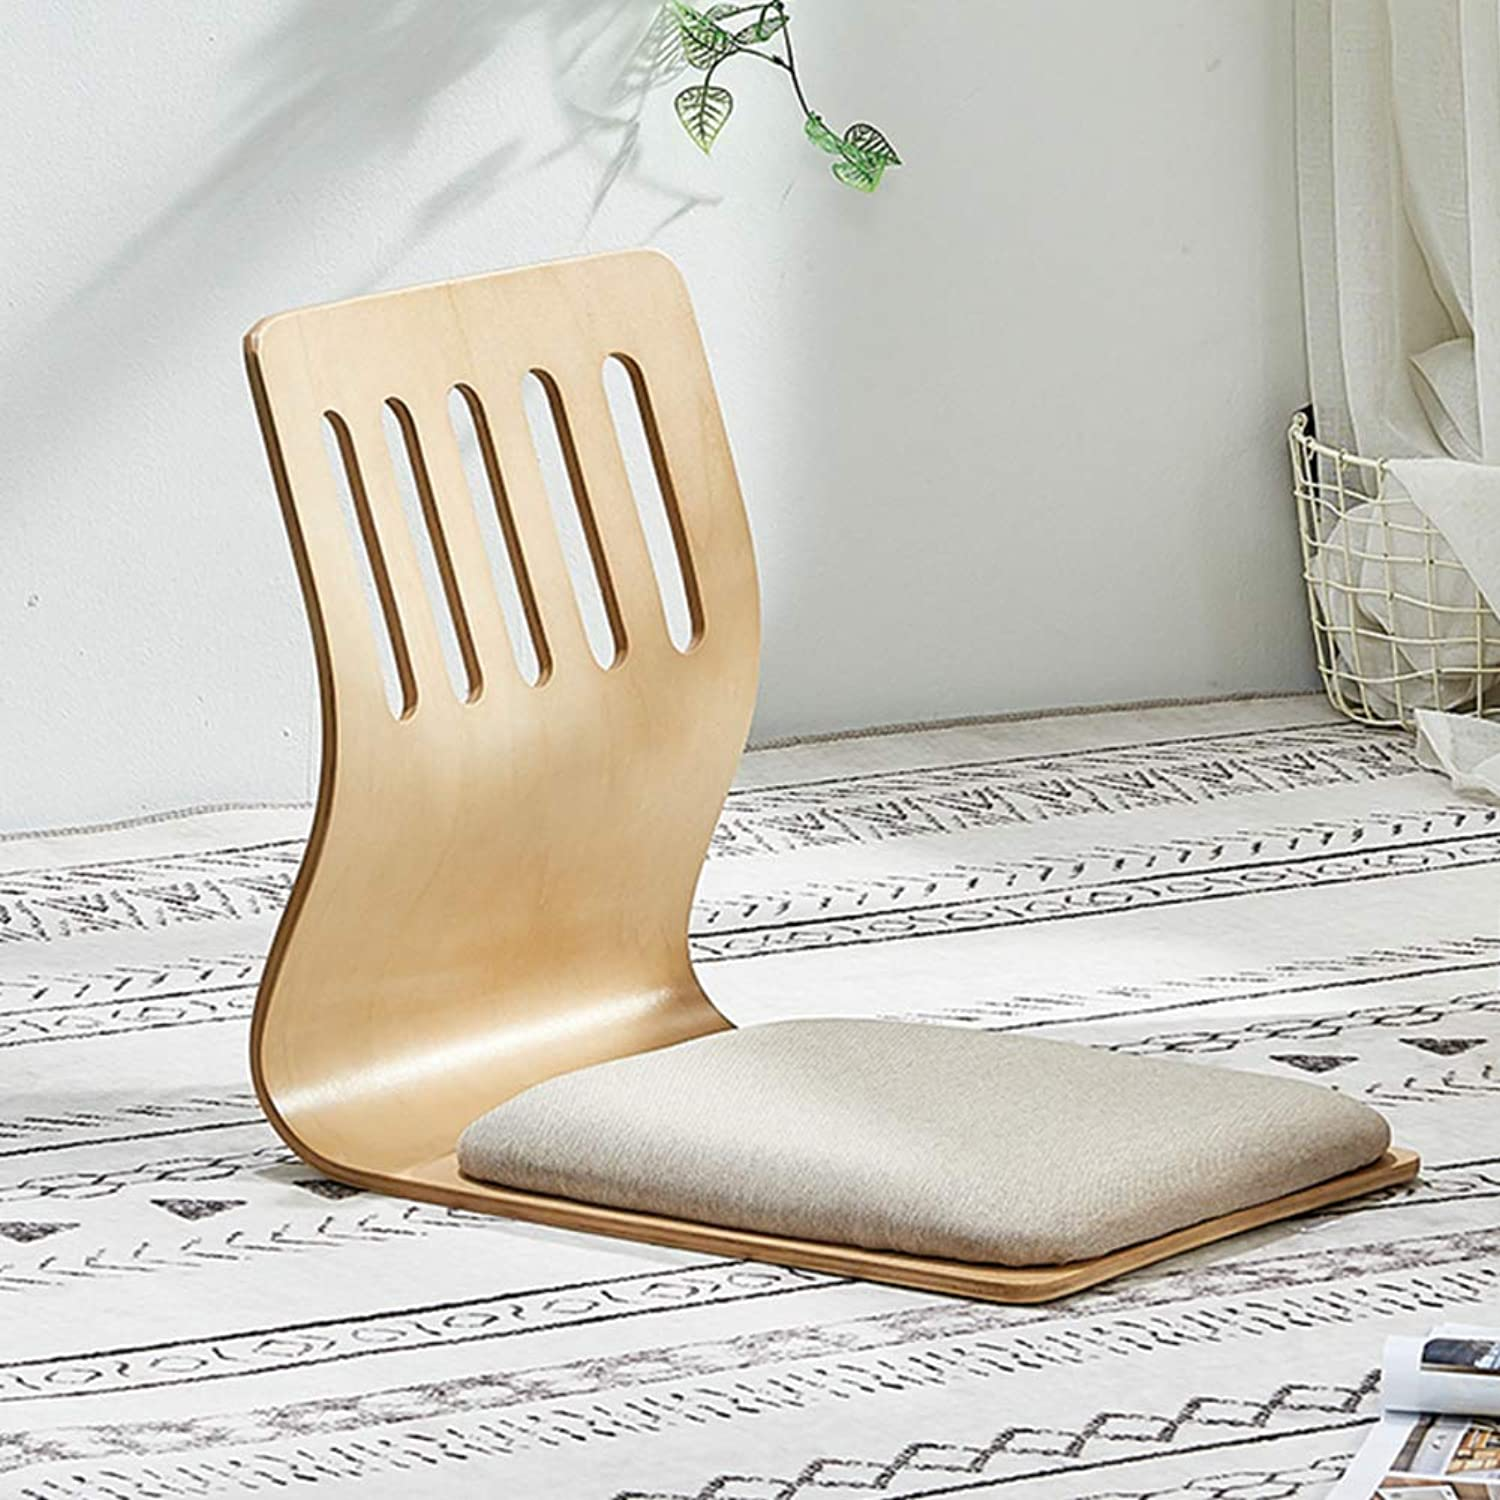 Padded Floor Chair, Wood semi-Foldable Legless Chair Sponge Filled Floor Chair Spine Support Tatami Chair Meditation Chair Bed seat -F